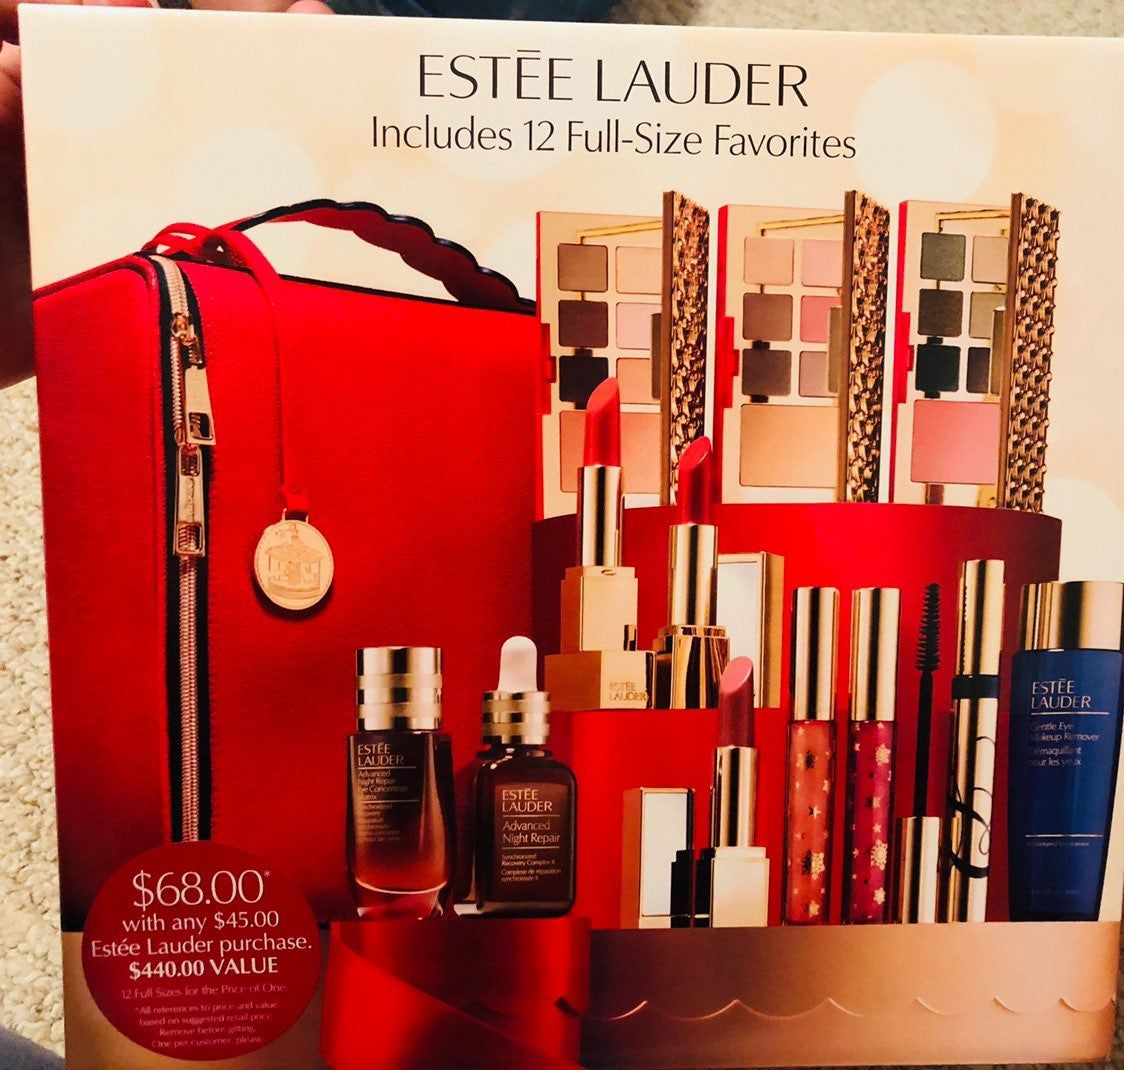 Brand New 100 Authentic Limited Edition 2018 Holiday Blockbuster Estee Lauder In Warm The Retail Value 440 Includes 12 Full Size Estee Estee Lauder Items